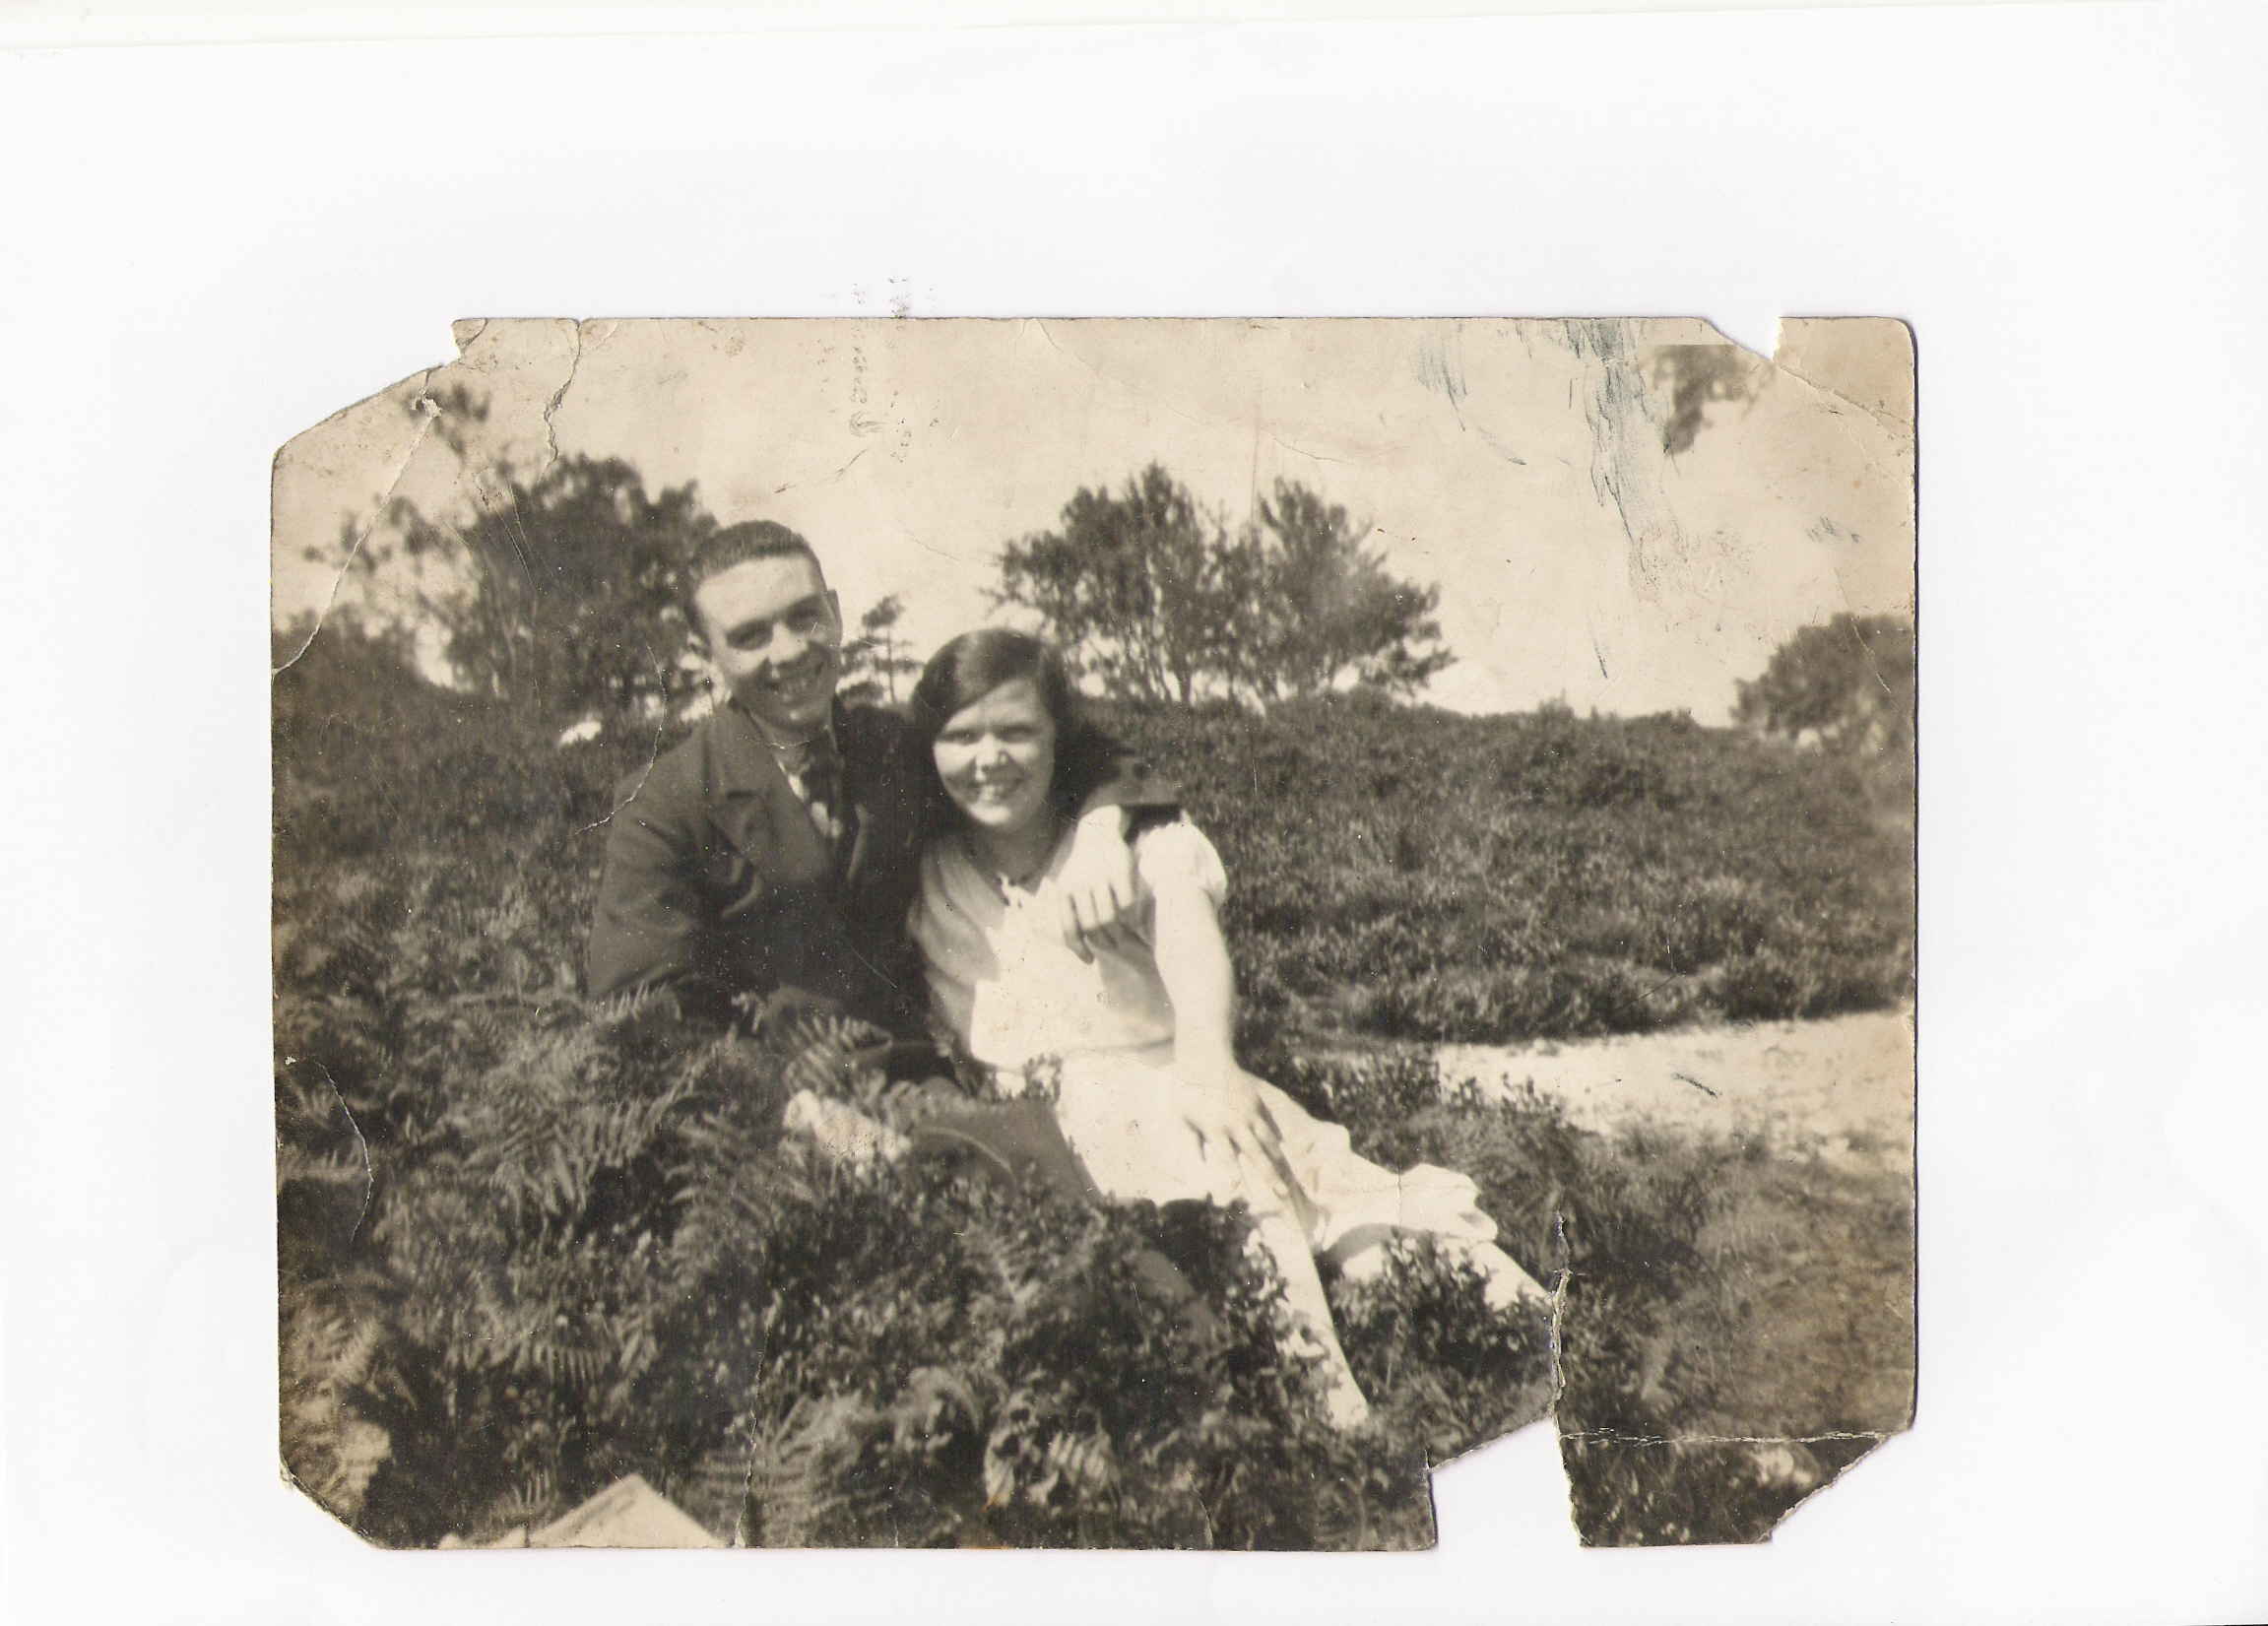 Fred and Rose early 1930s